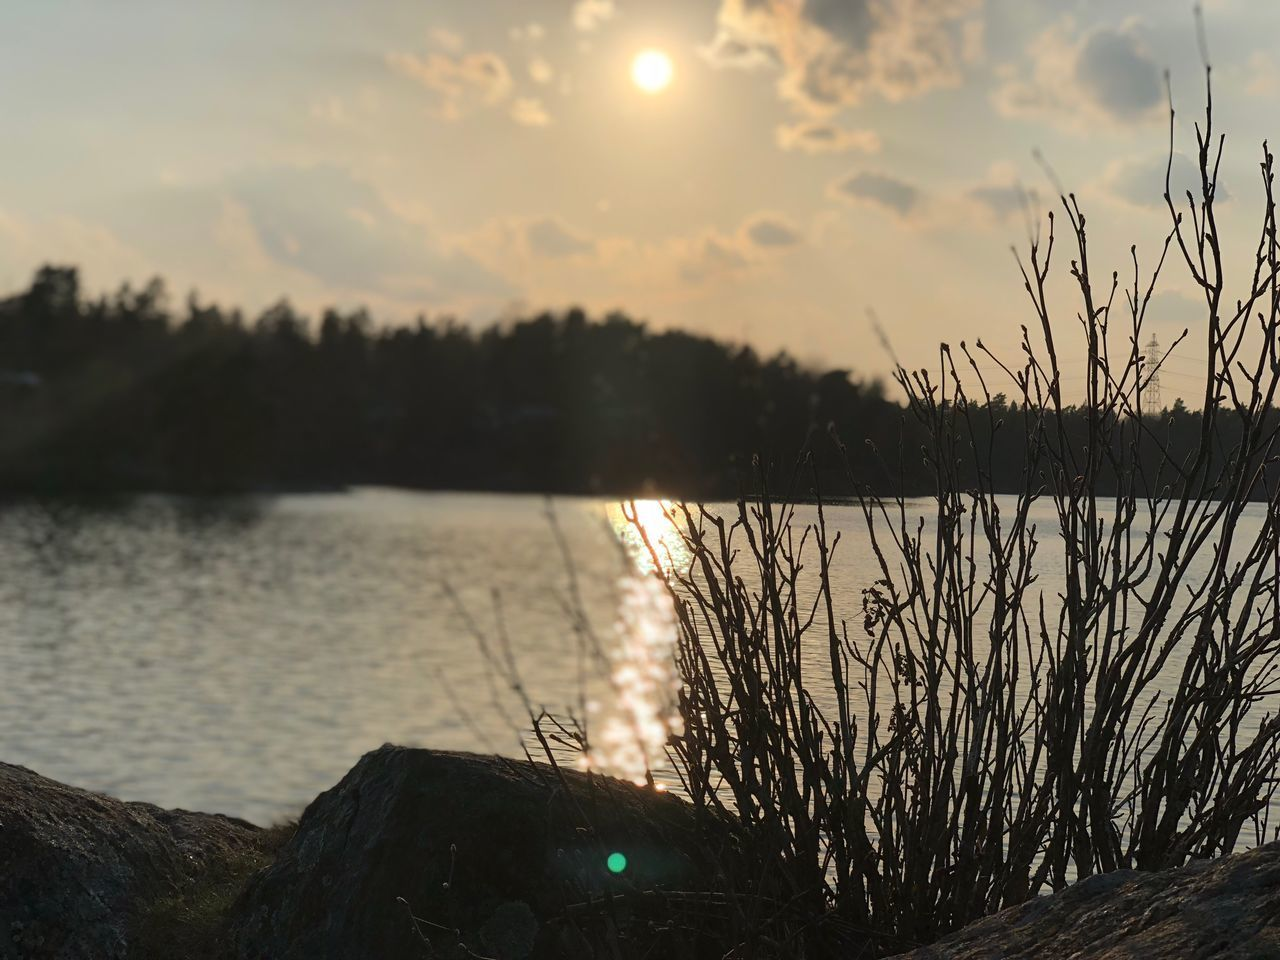 water, sunset, sky, tranquility, tranquil scene, beauty in nature, scenics - nature, plant, tree, lake, nature, sun, reflection, no people, idyllic, outdoors, cloud - sky, sunlight, non-urban scene